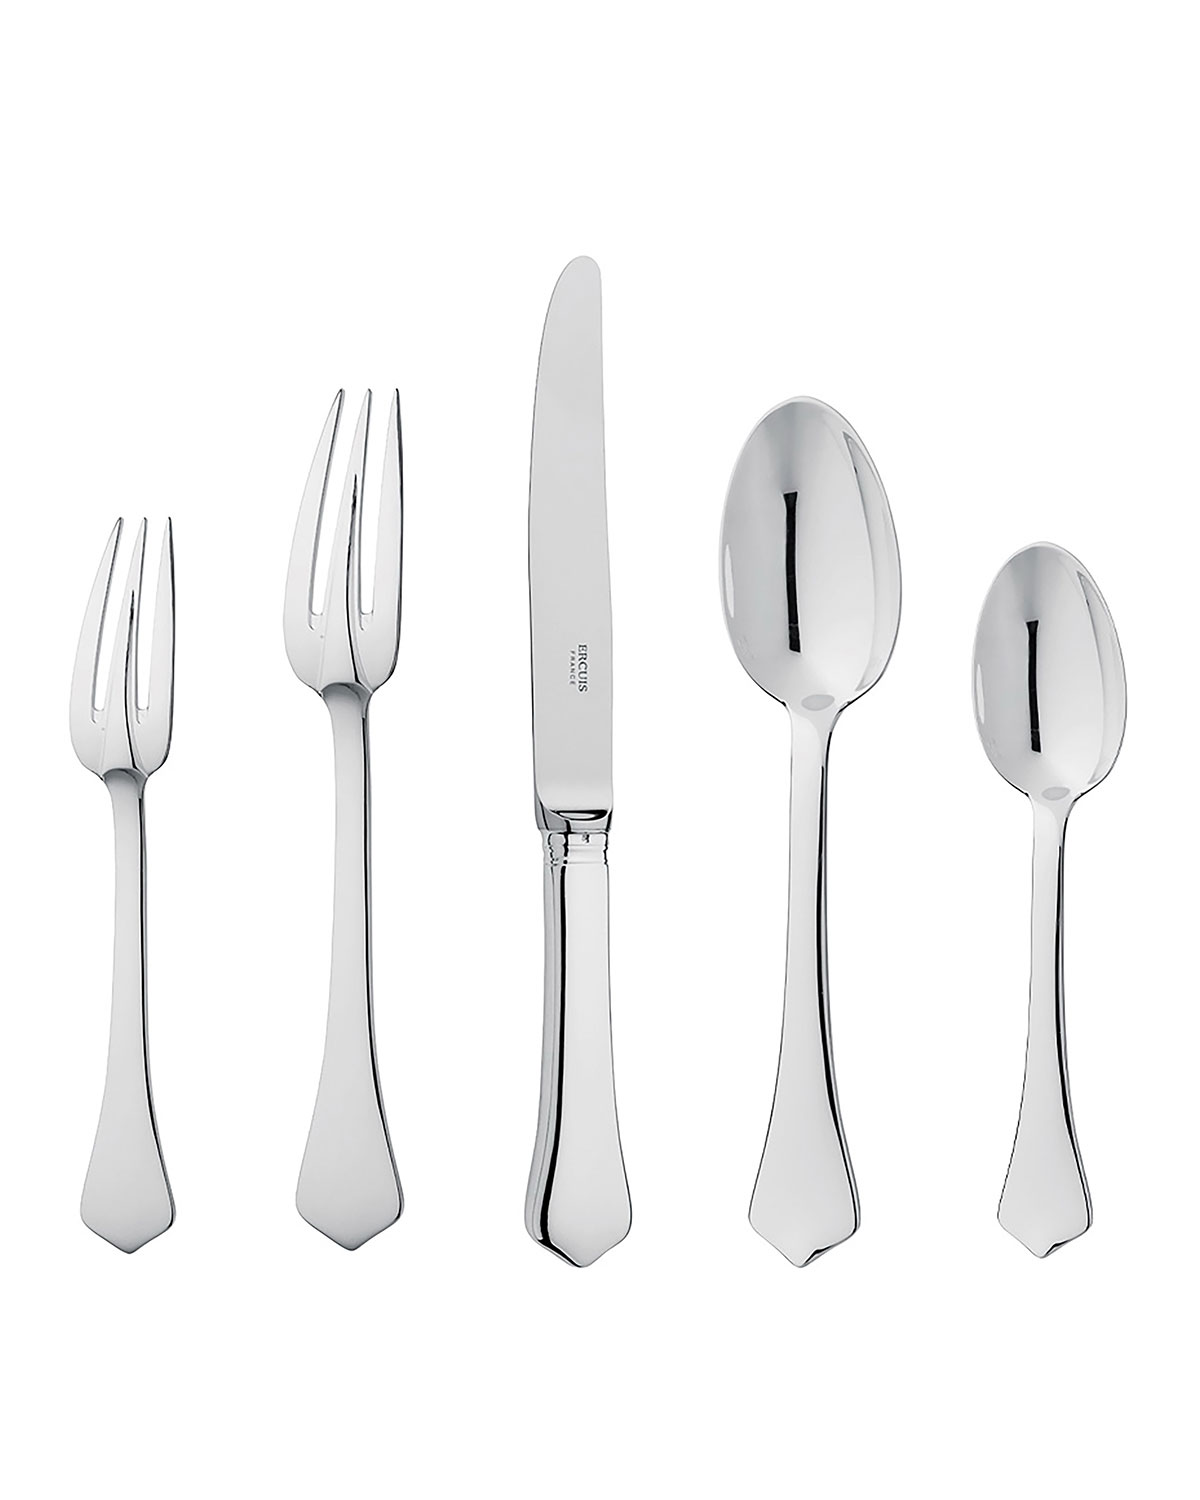 Ercuis BRANTOME SILVER PLATED 5-PIECE FLATWARE PLACE SETTING